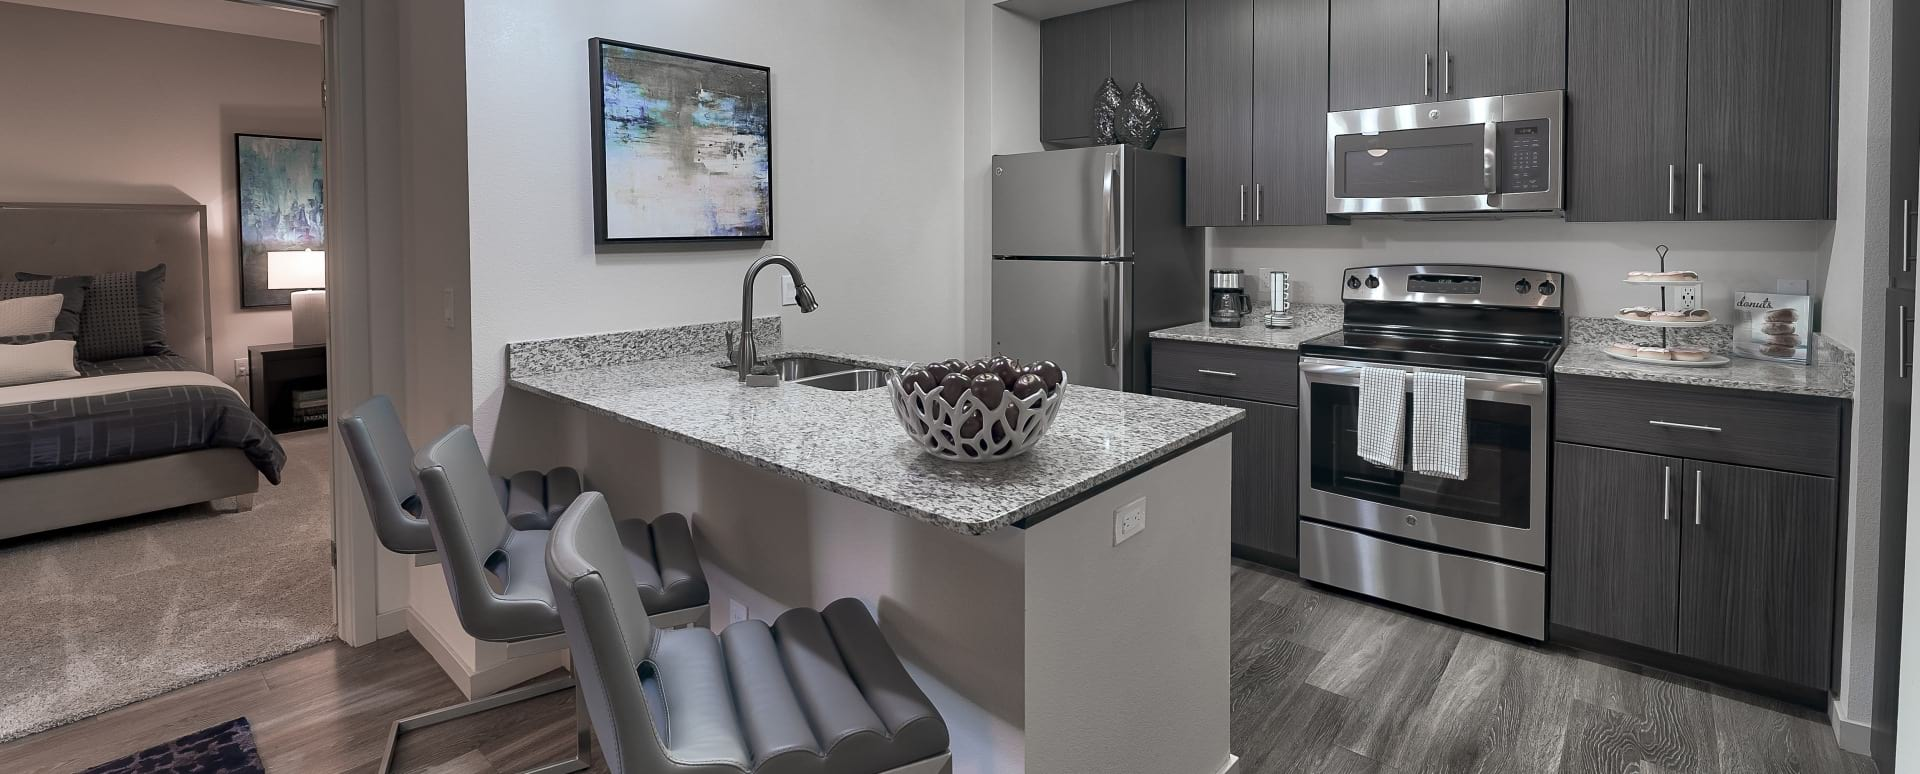 Cortland Biltmore Place amenities page